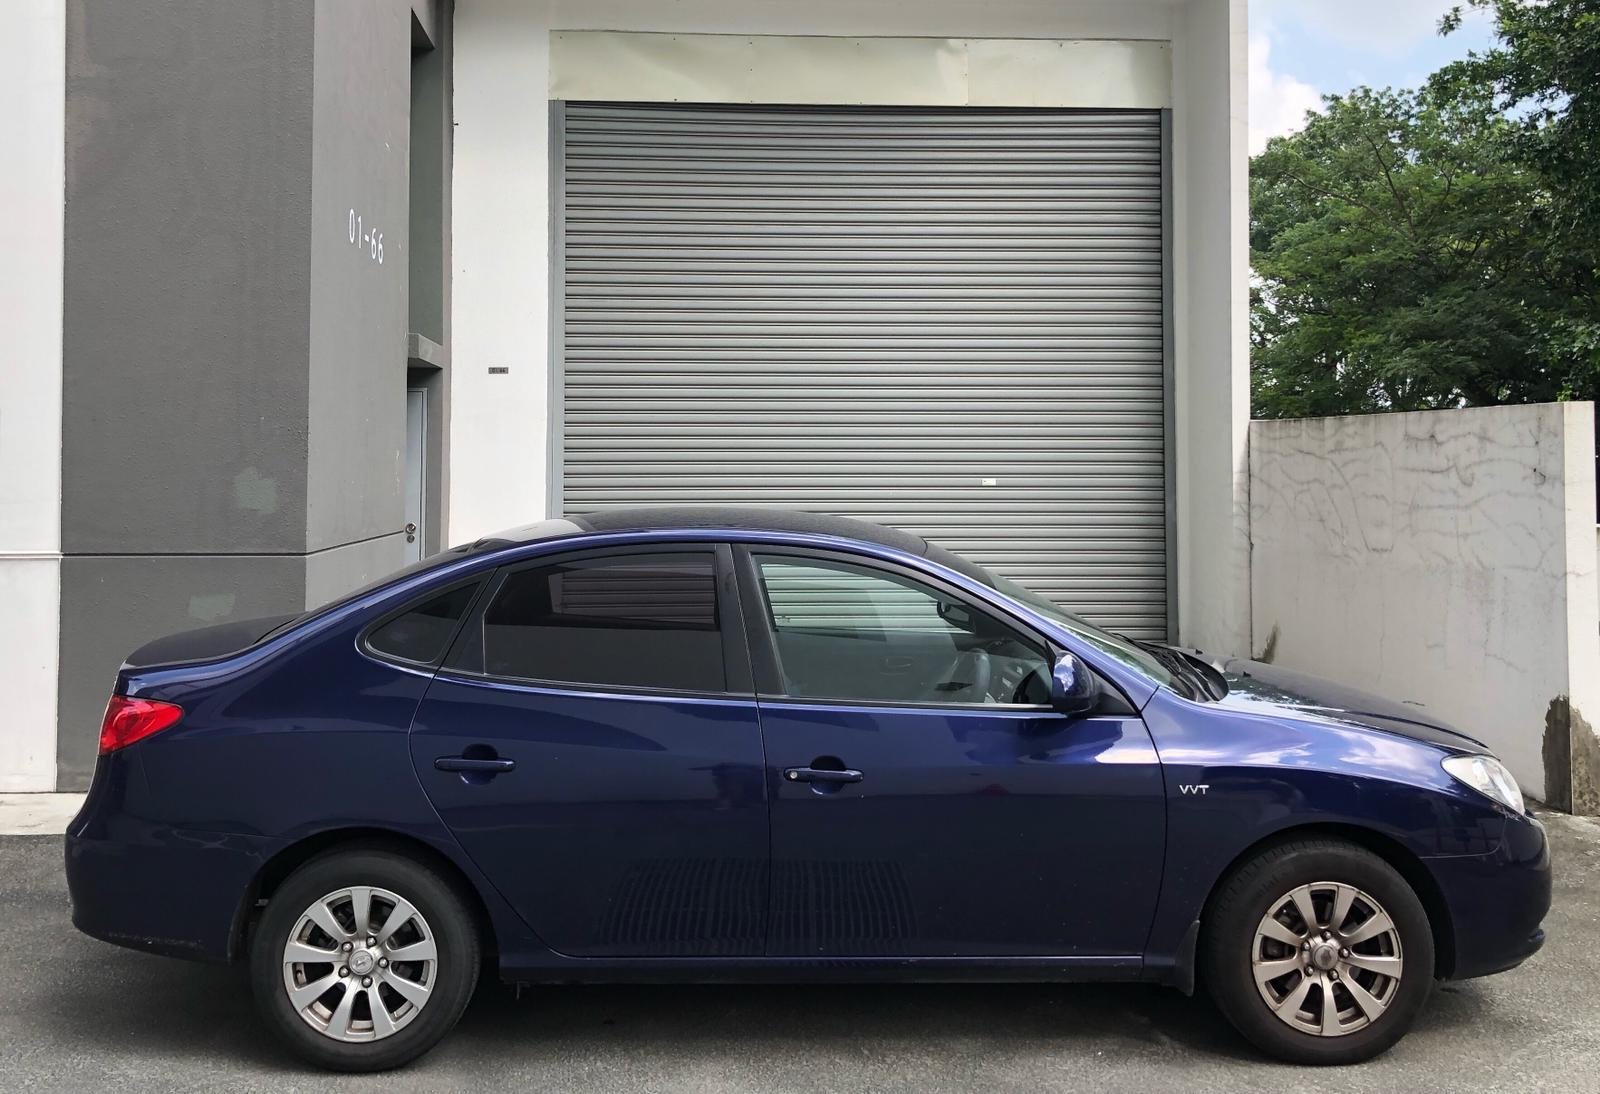 Hyundai Avante 1.6a*Top Condition*$50 per day For Rent Grab Rental Gojek Or Personal Use Low price and Cheap Cars